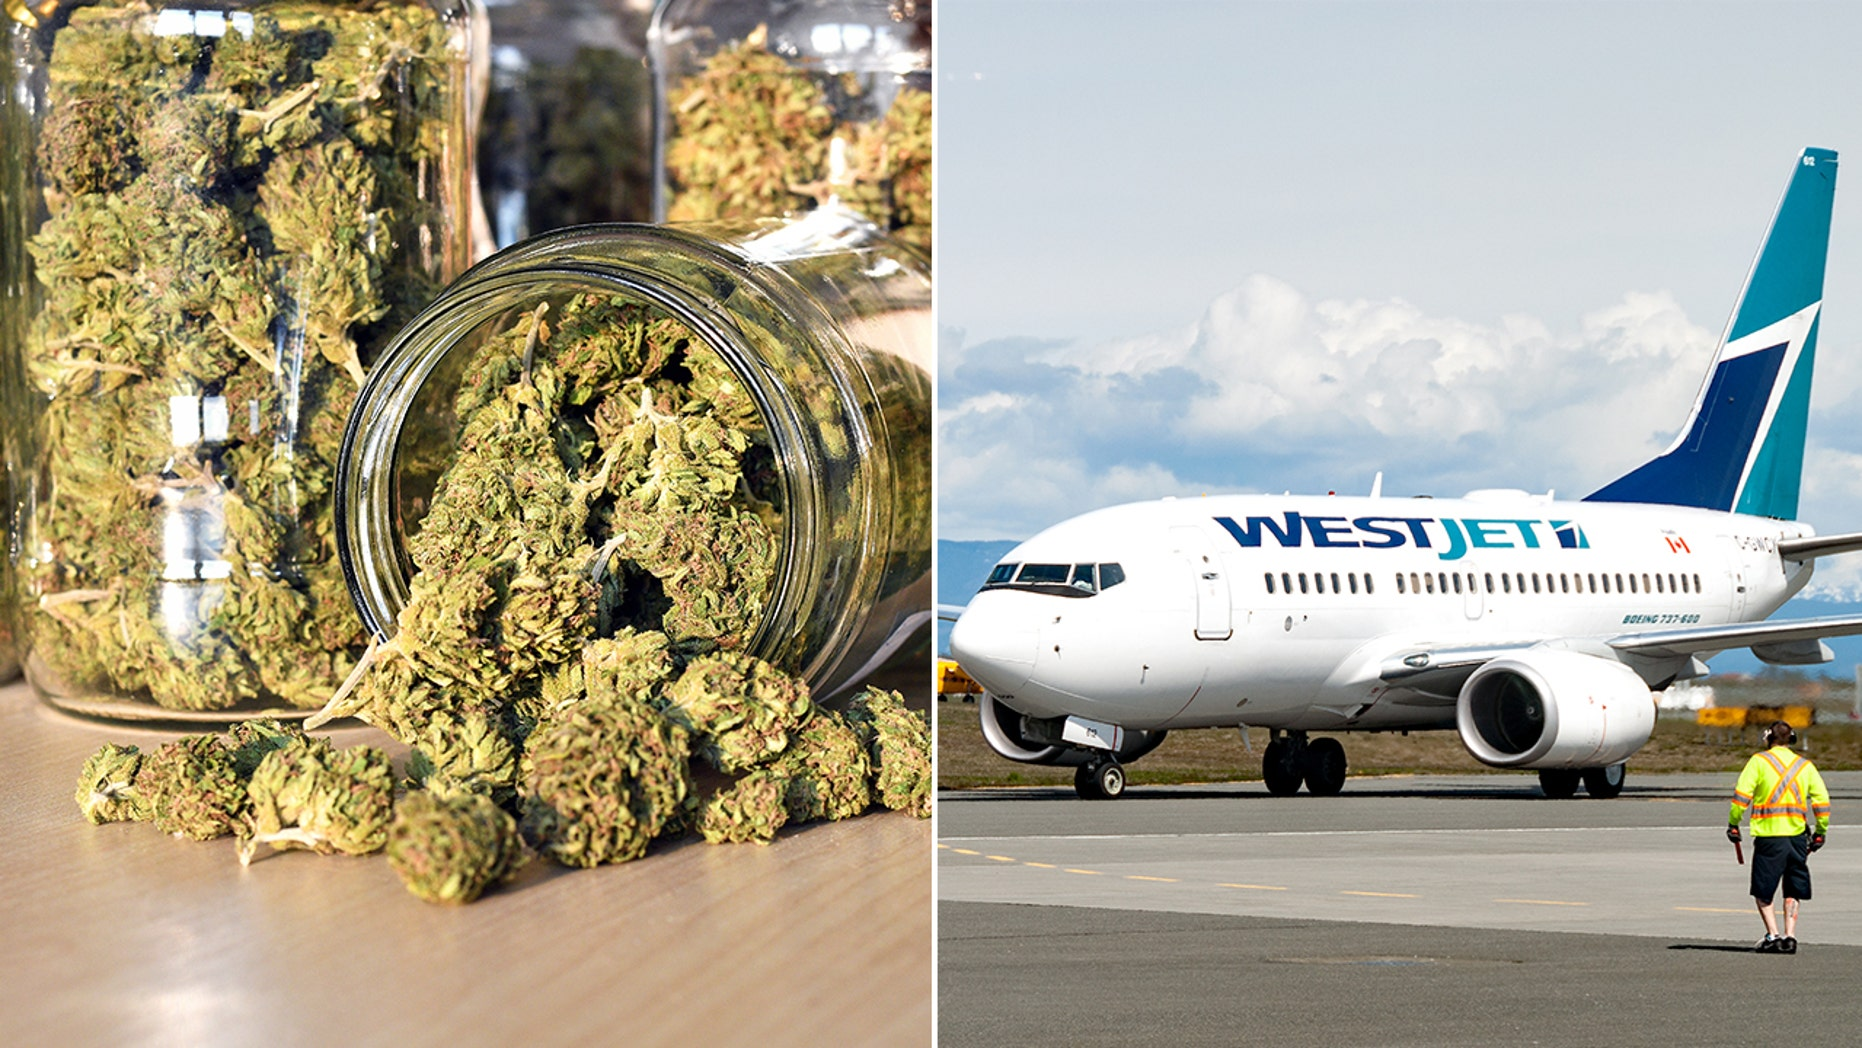 WestJet employees won't be able to smoke weed, despite Canada legalizing the drug for recreational use.